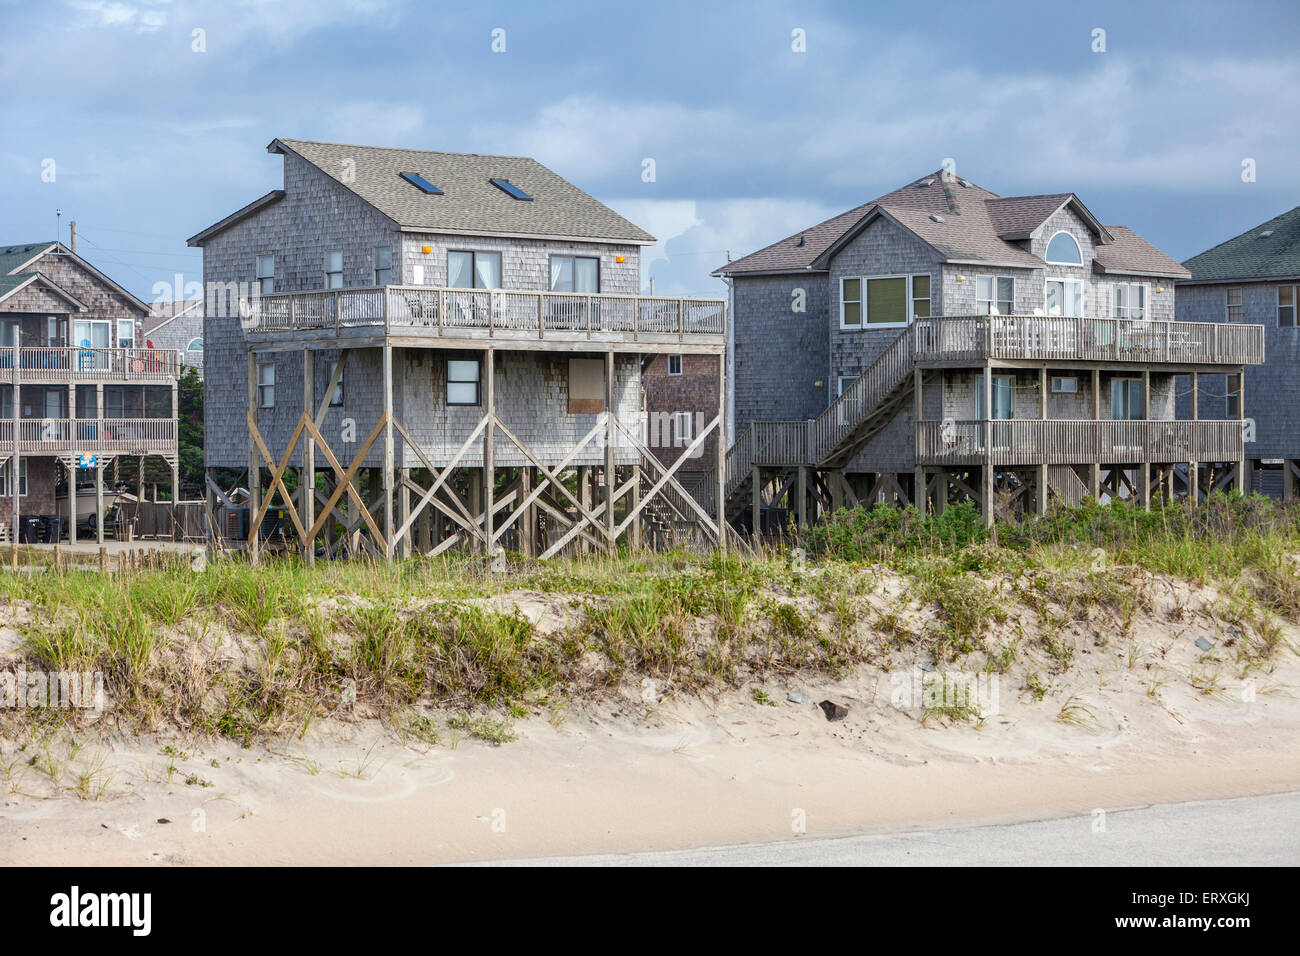 North carolina beach house rentals house plan 2017 for Beach house plans outer banks